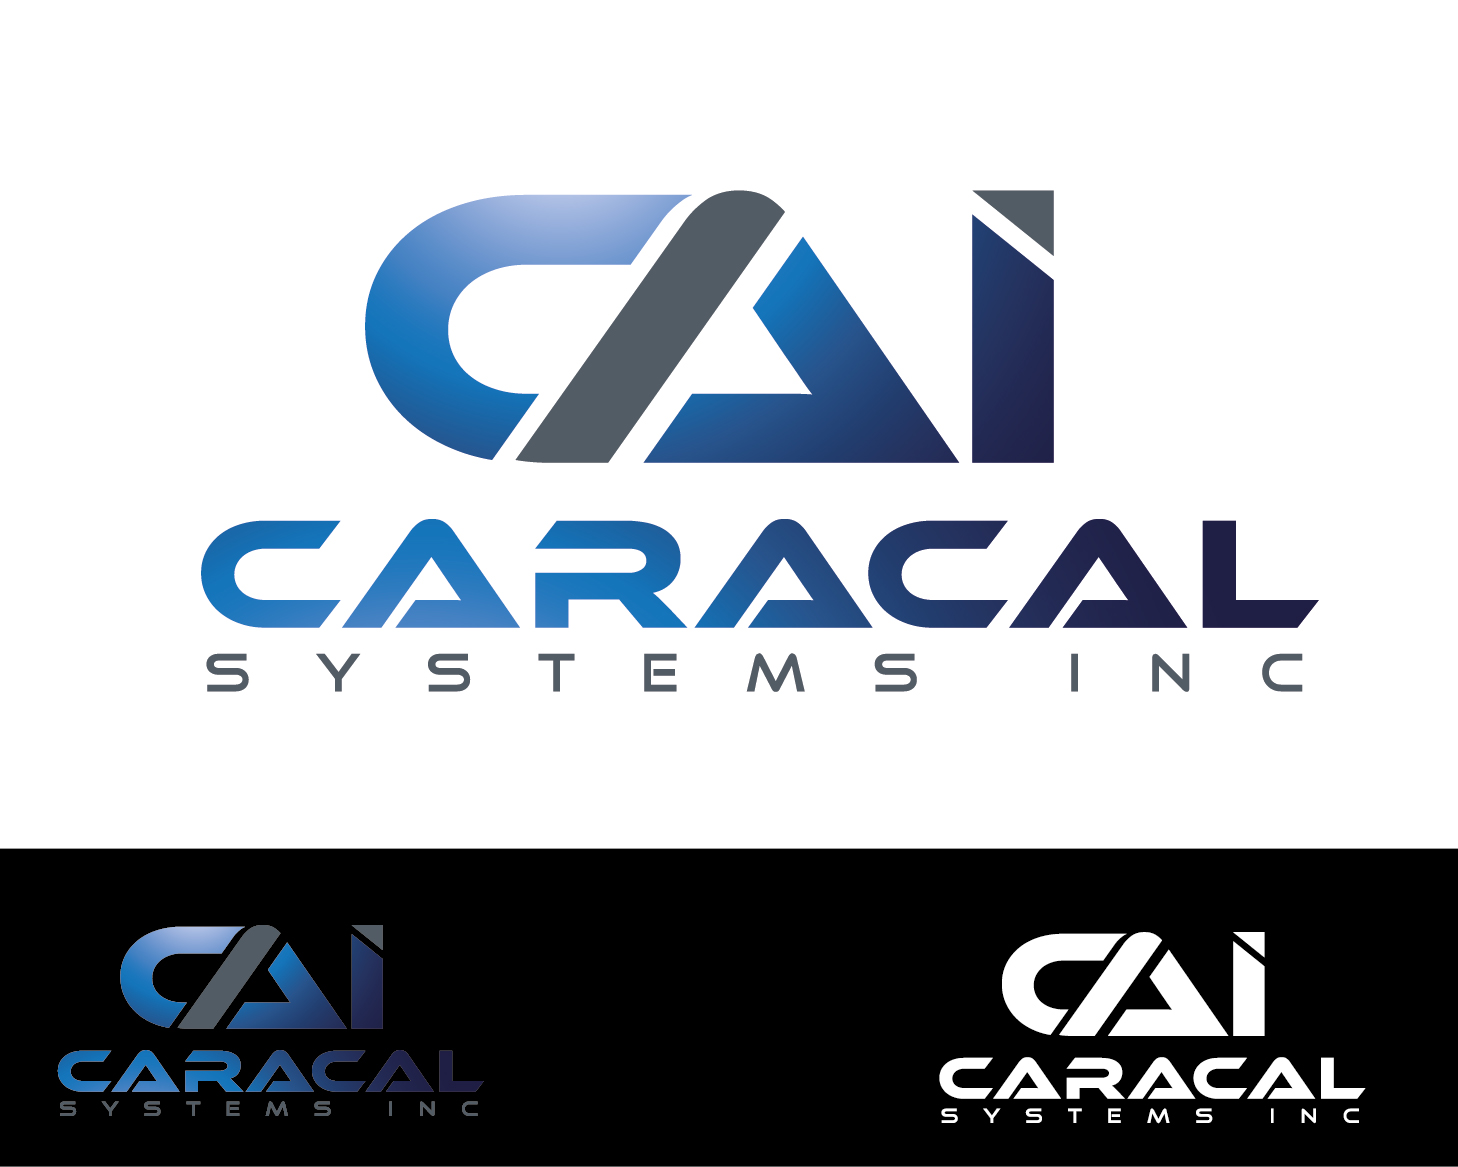 Logo Design by VENTSISLAV KOVACHEV - Entry No. 75 in the Logo Design Contest Inspiring Logo Design for Caracal Systems Inc..